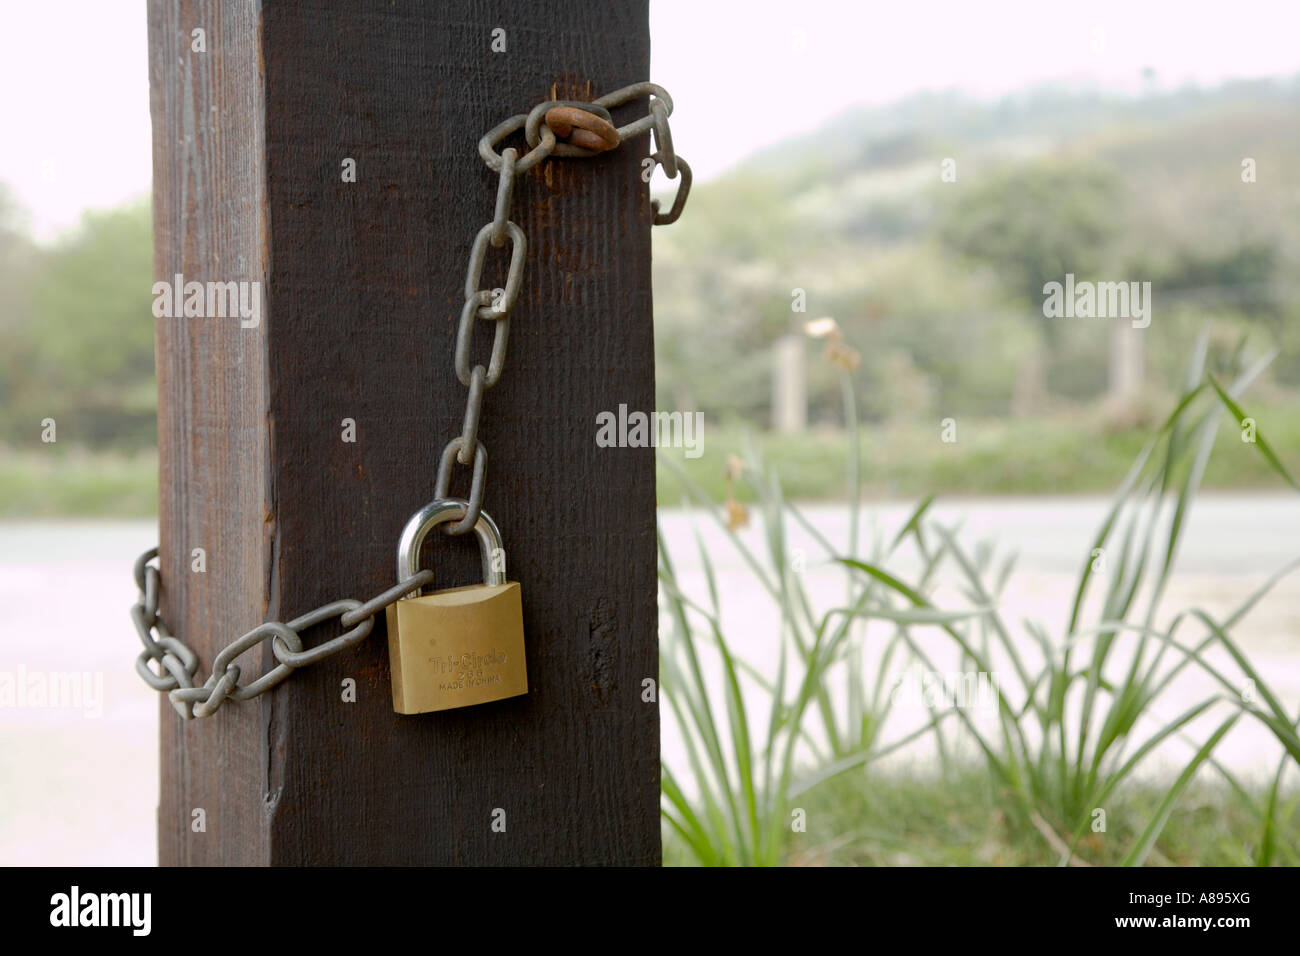 Padlock and chain on a country gatepost - Stock Image